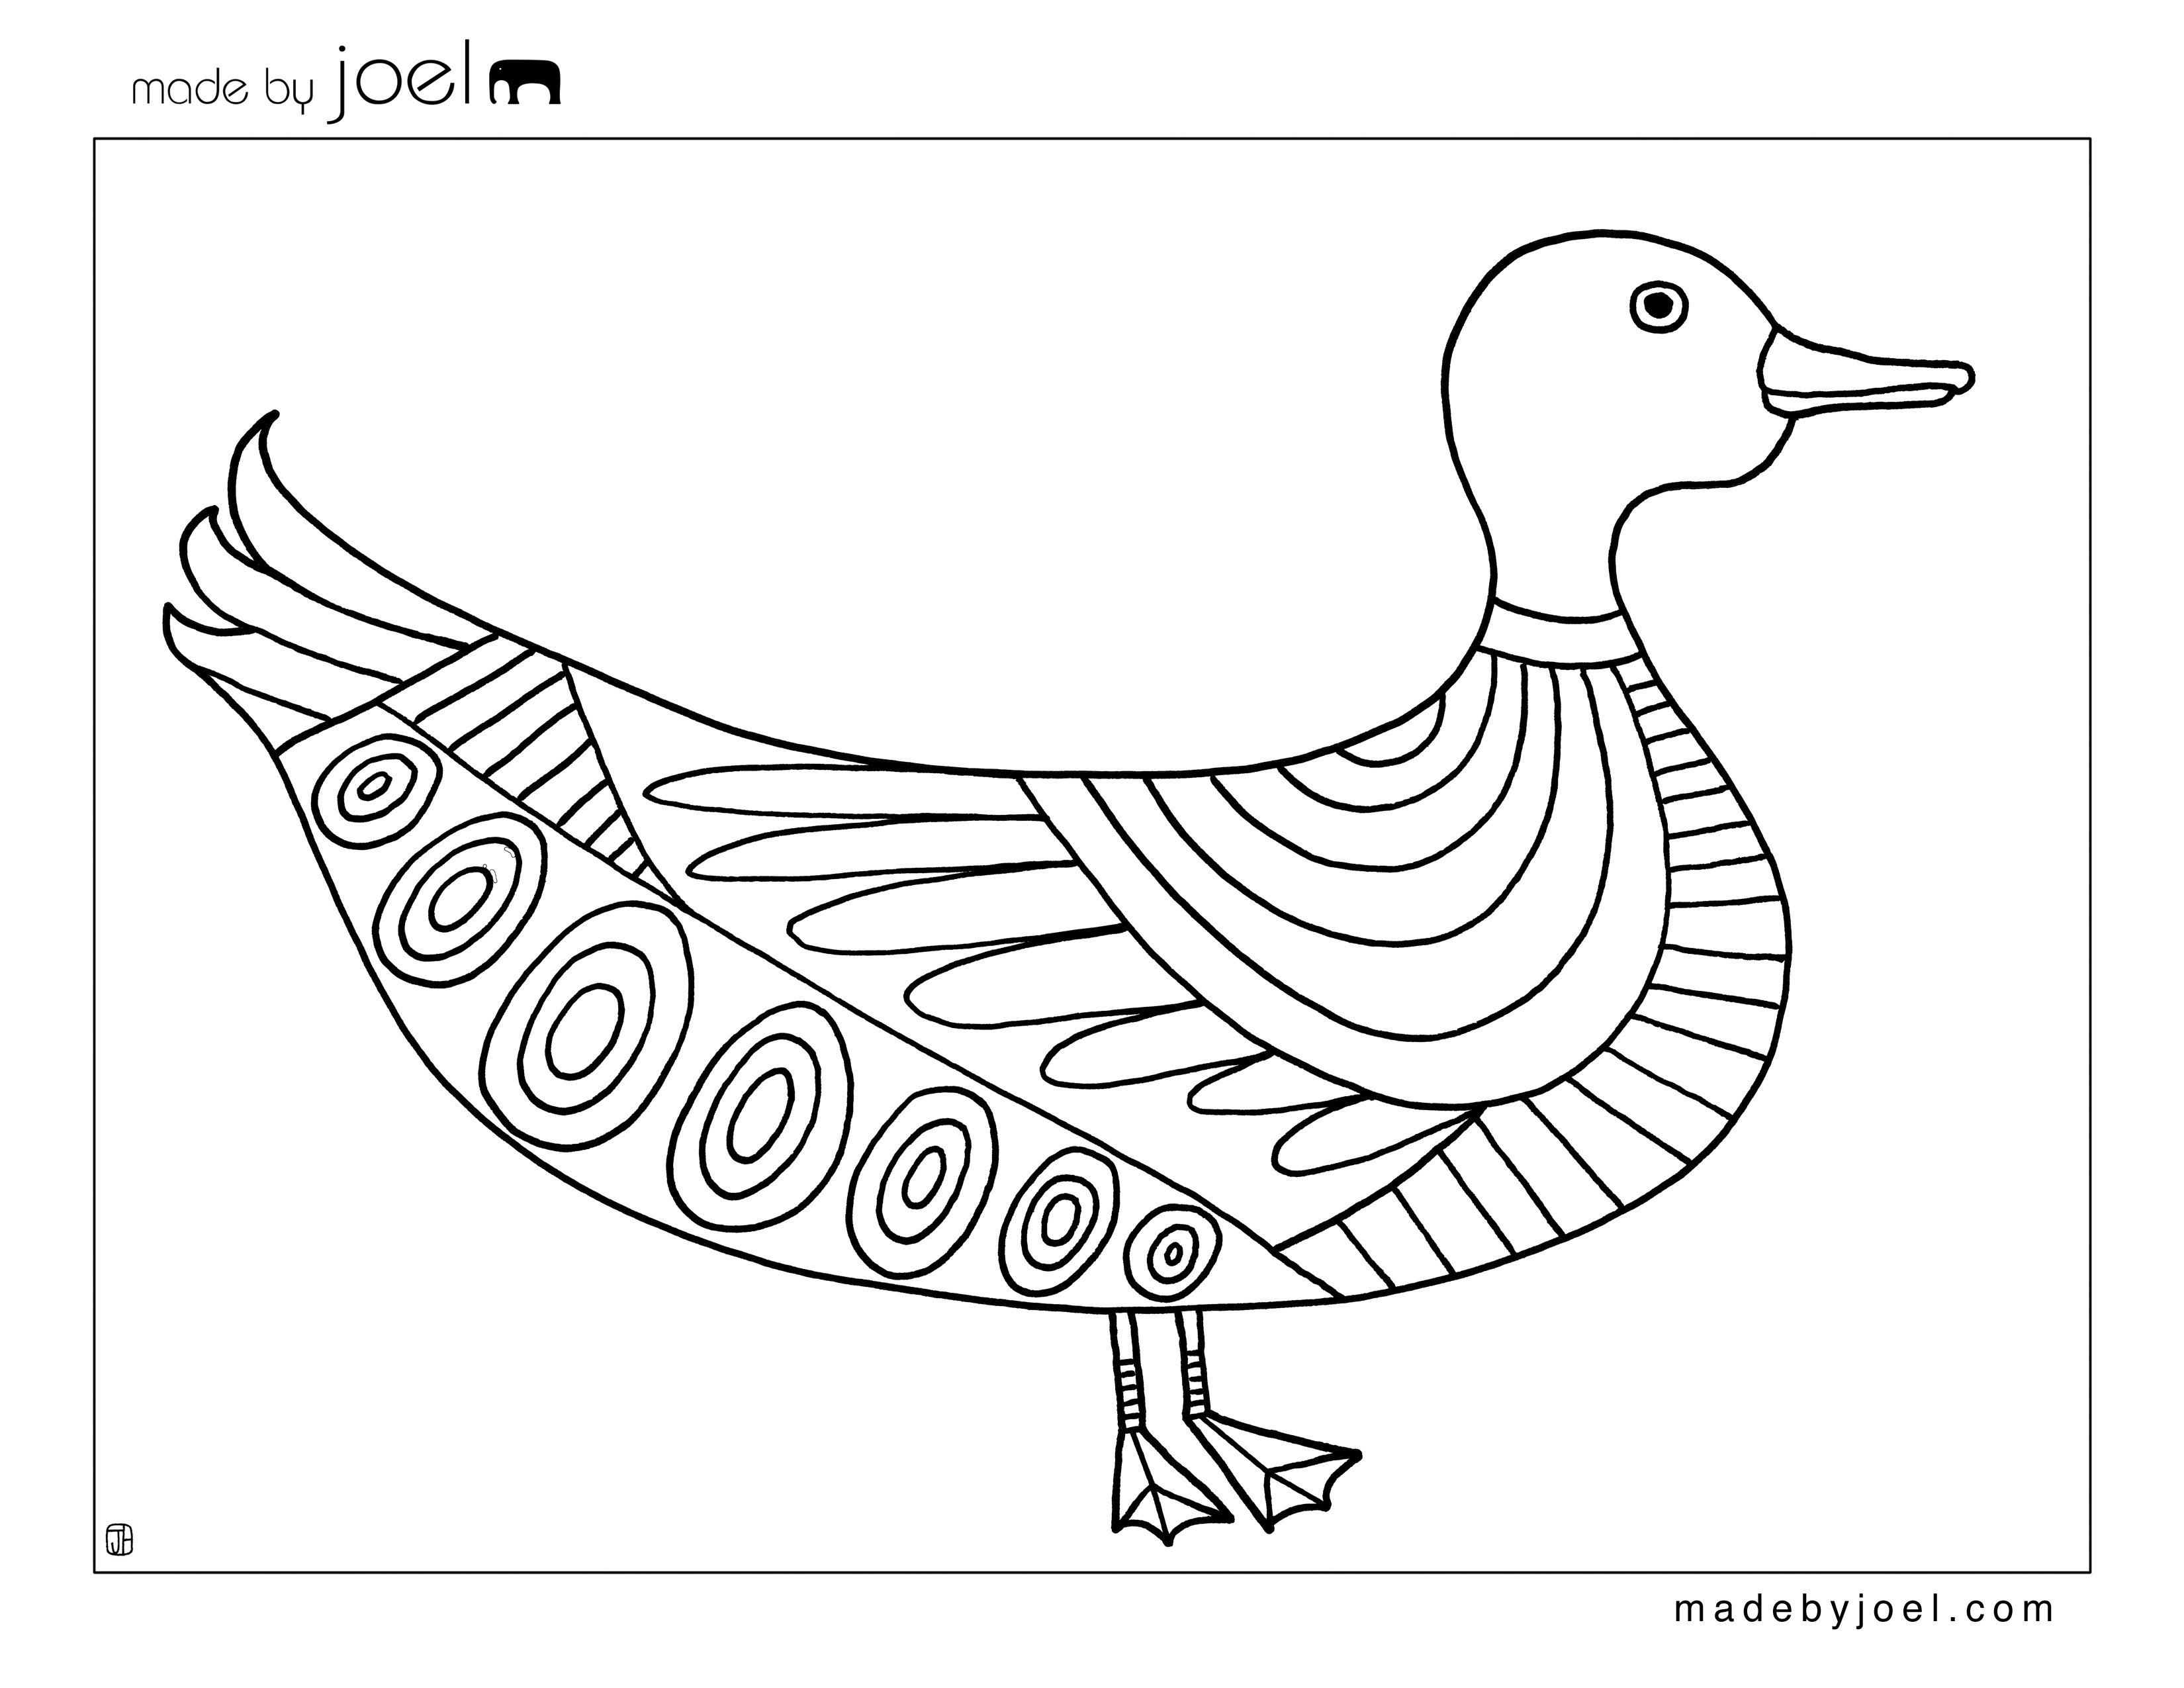 Duck Coloring Sheet - Made by Joel